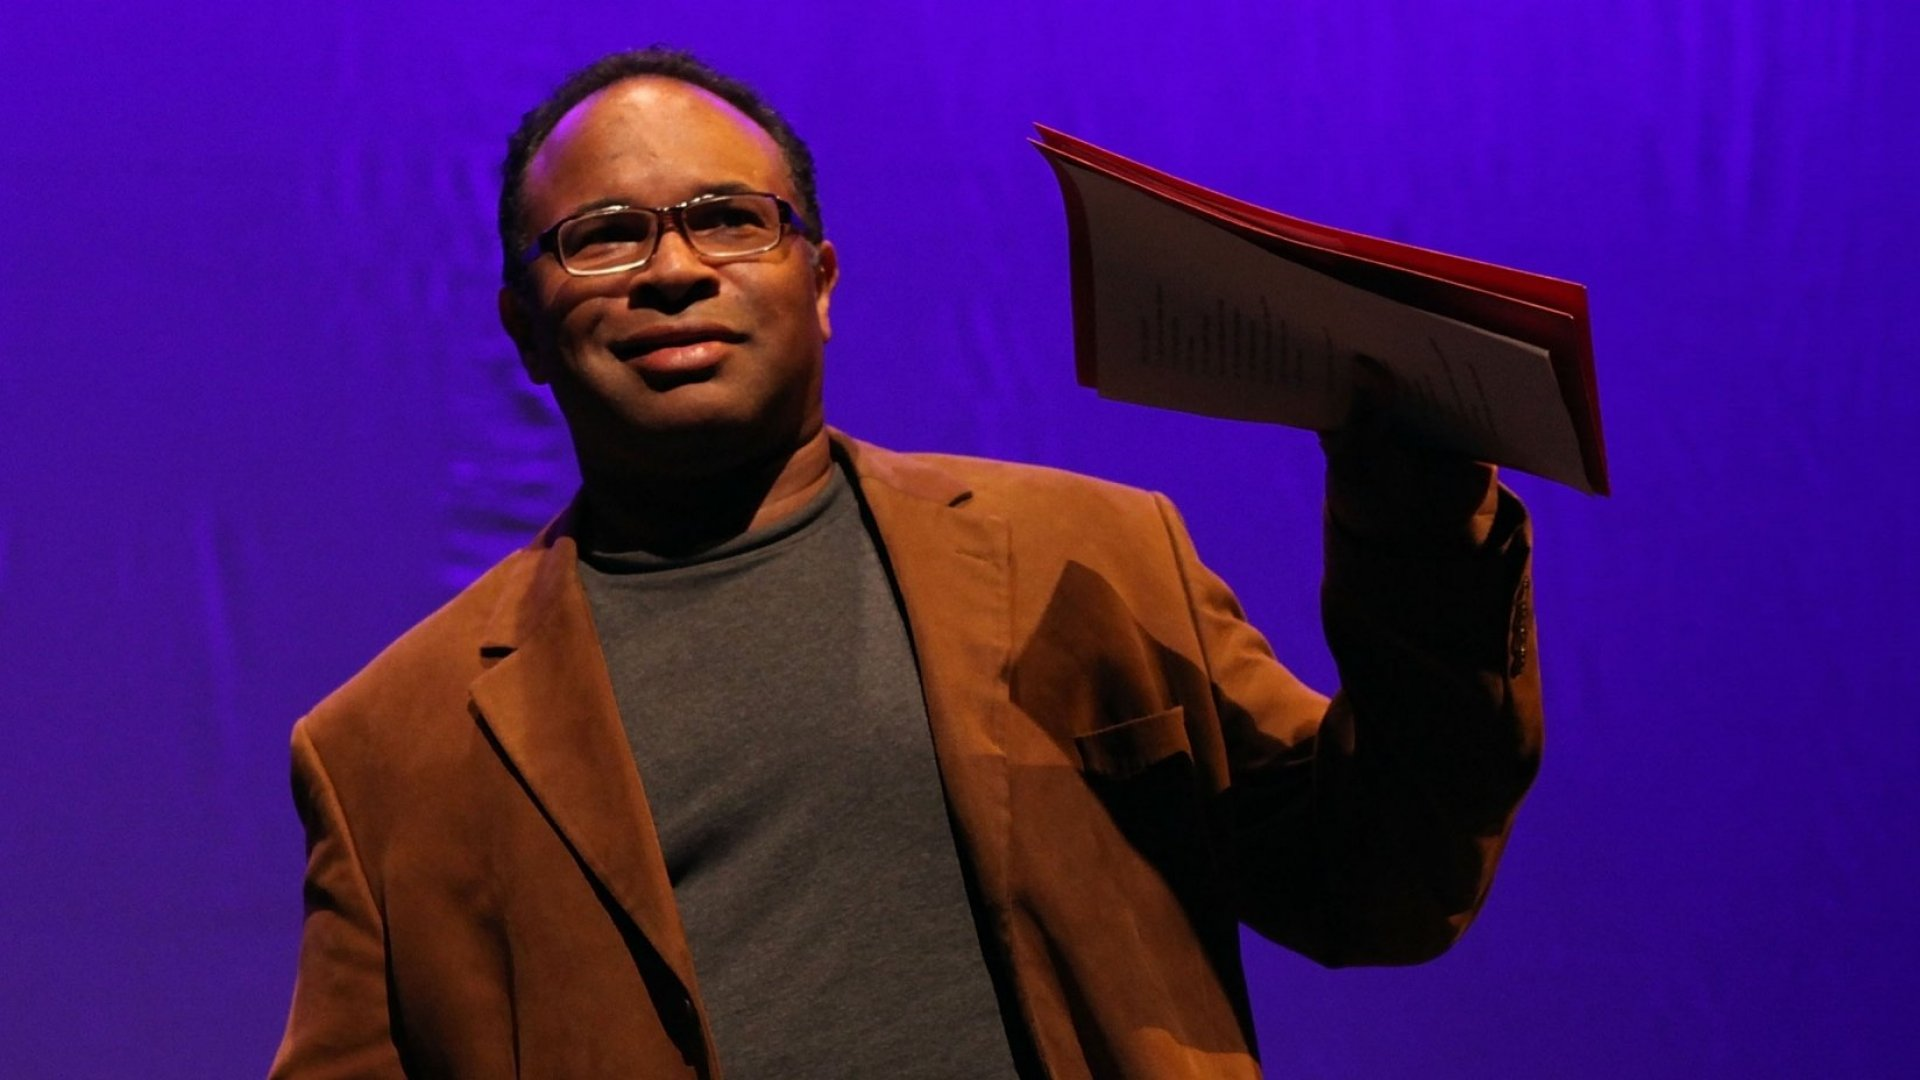 """Geoffrey Owens, '80s sitcom actor known for his role on """"The Cosby Show"""" was shamed by Fox News for having a day job."""